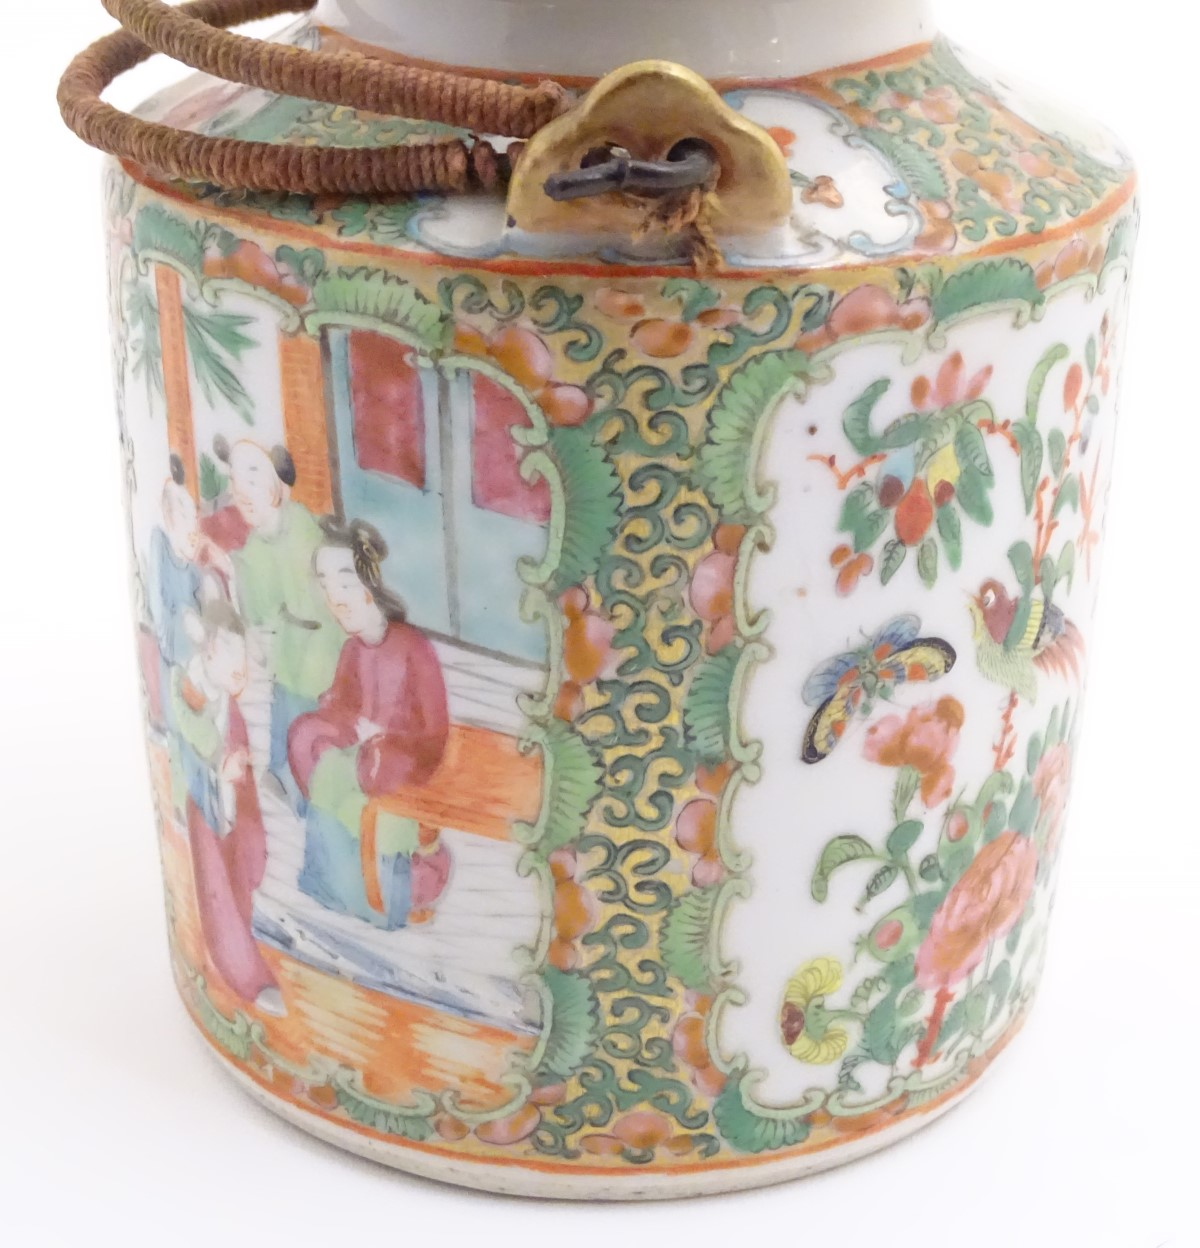 Lot 29 - A Cantonese famille verte teapot with panelled decoration depicting flowers, butterflies and birds,